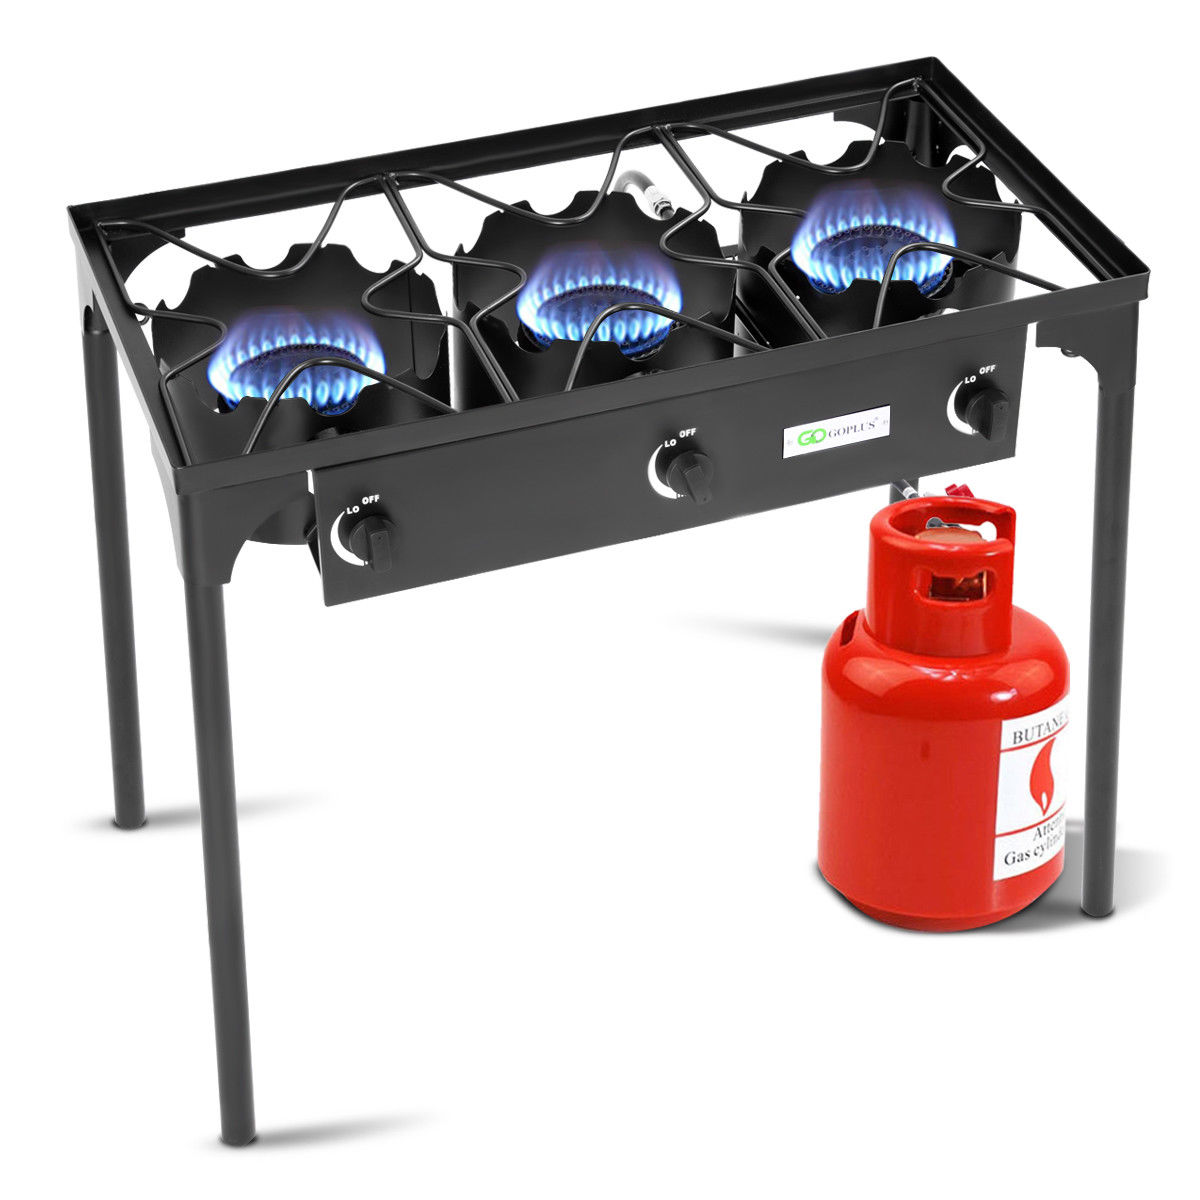 Goplus Portable Propane 225,000-BTU 3 Burner Gas Cooker Outdoor Camp Stove BBQ